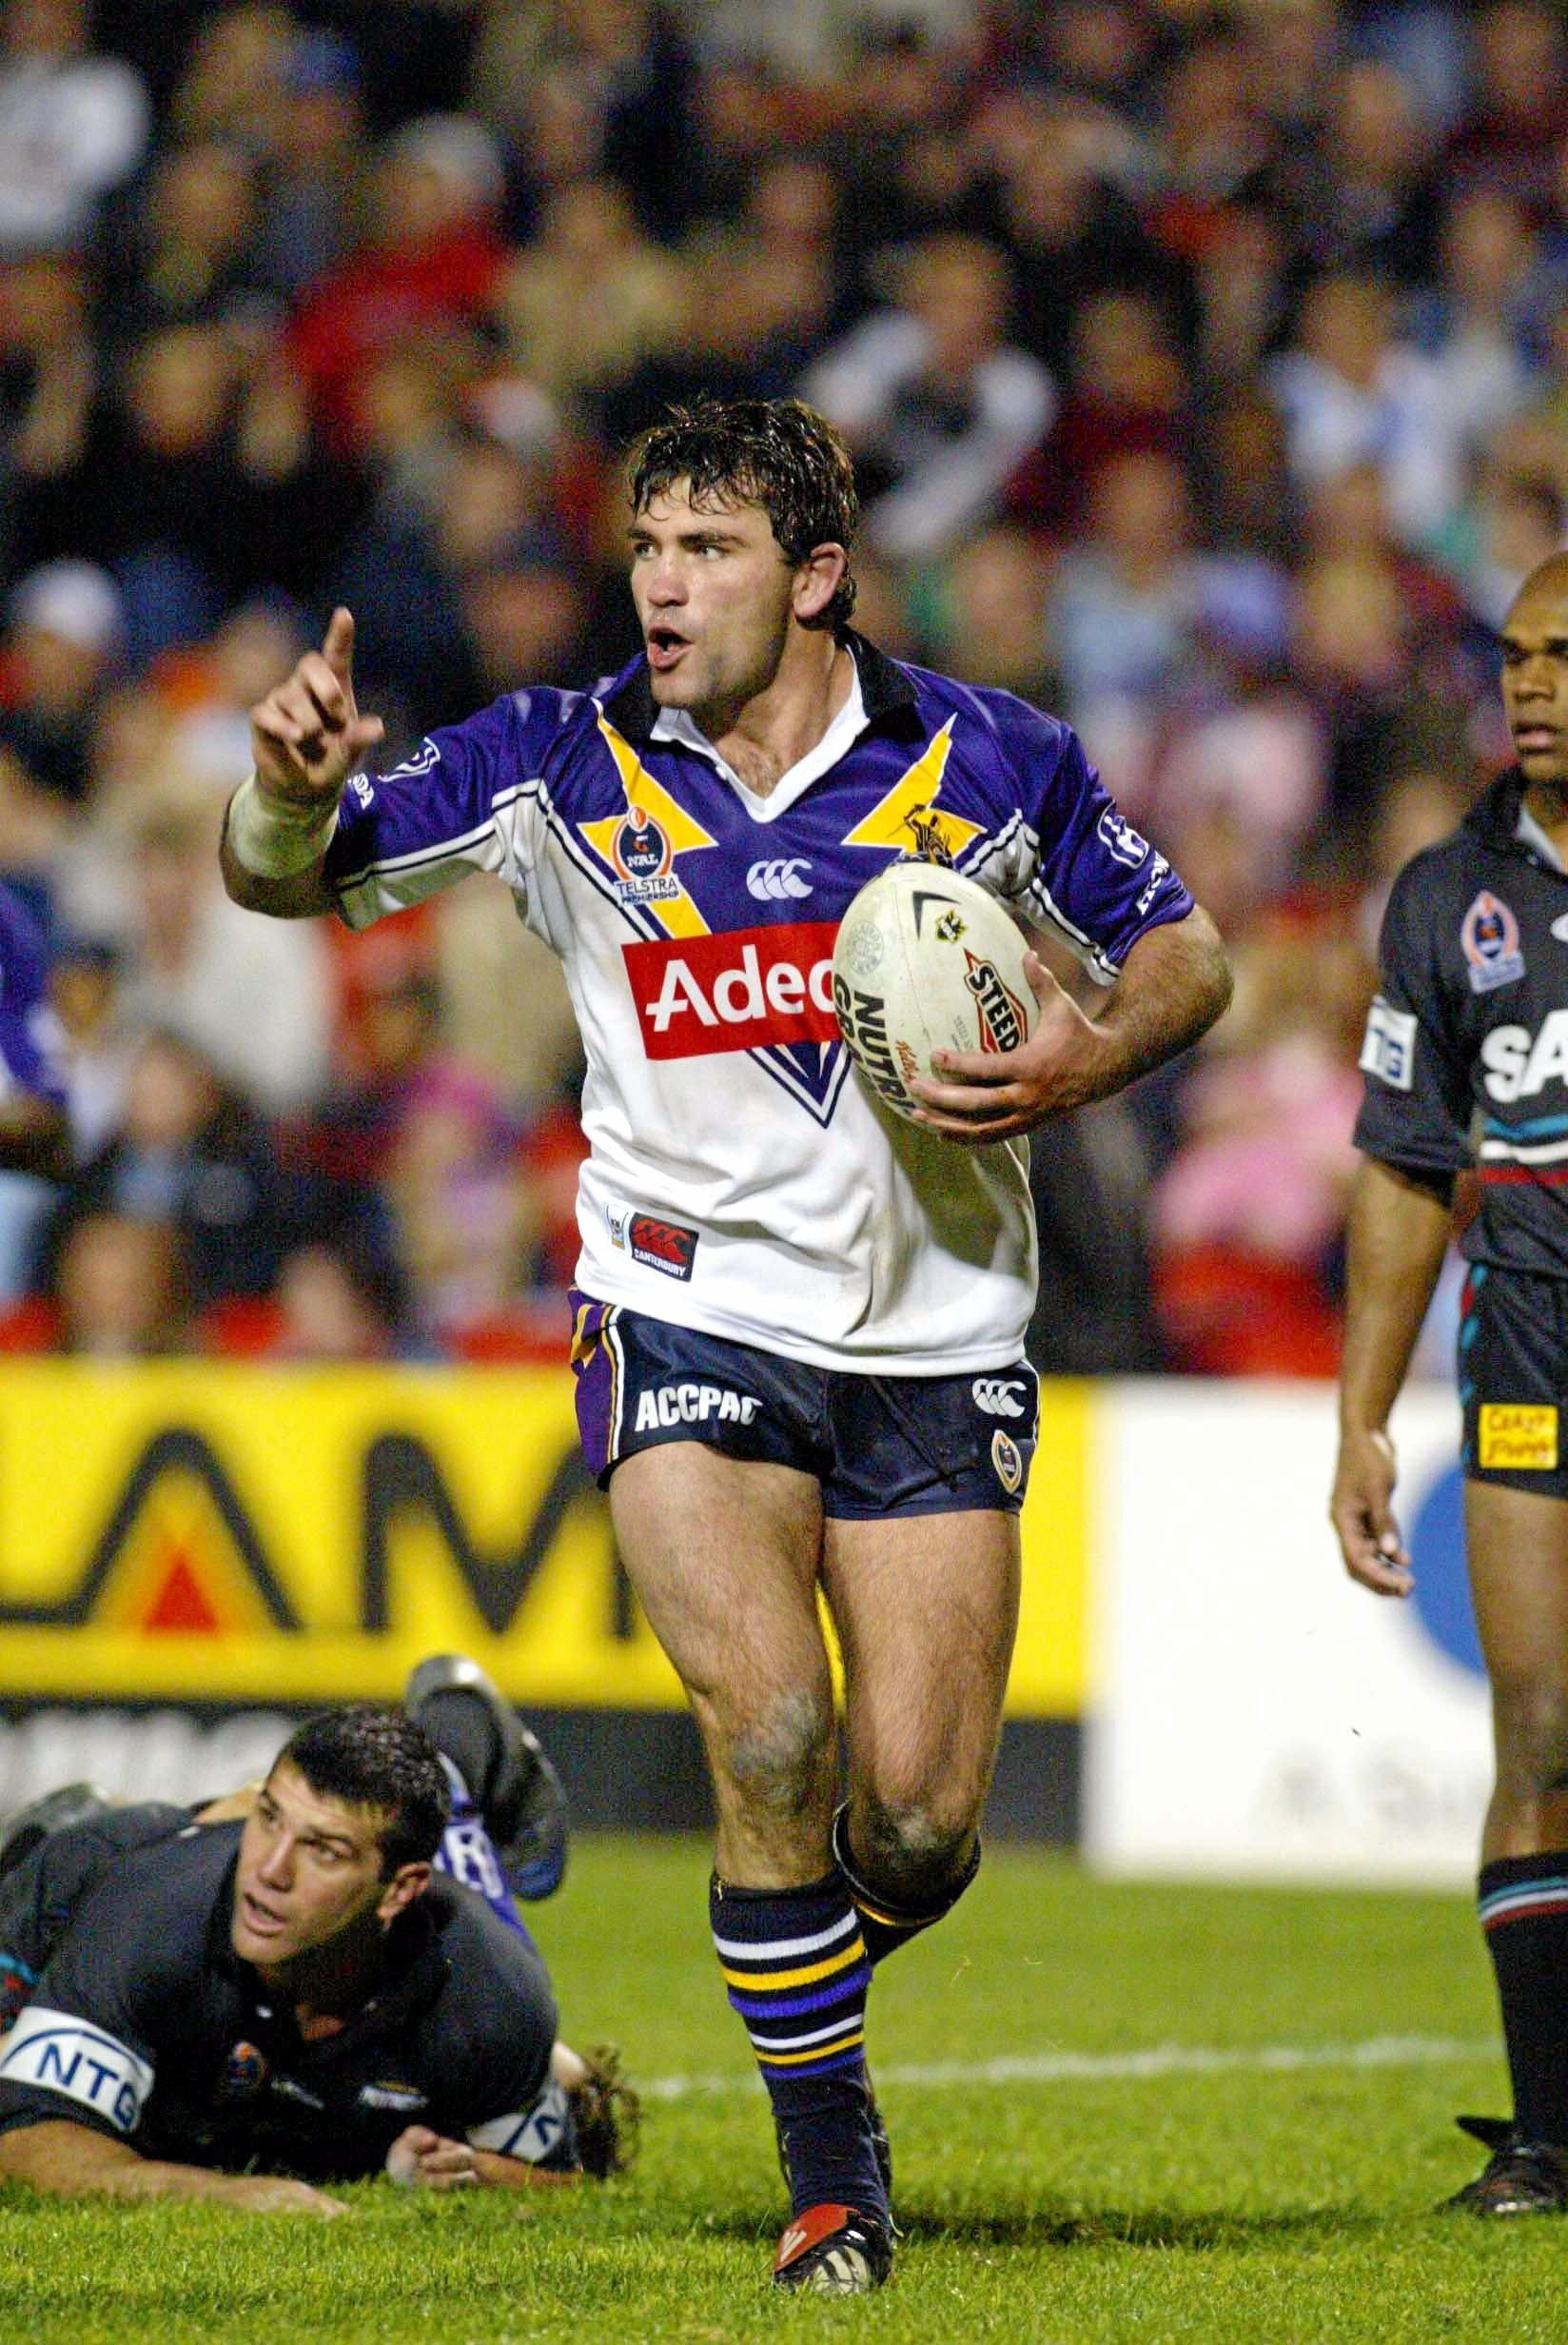 Robbie Kearns celebrates scoring his try   - NRL RUGBY LEAGUE  PENRITH PANTHERS v MELBOURNE STORM at Penrith, June 14th 2003. (AAP Image/Action Photographics) NO ARCHIVING, EDITORIAL USE ONLY